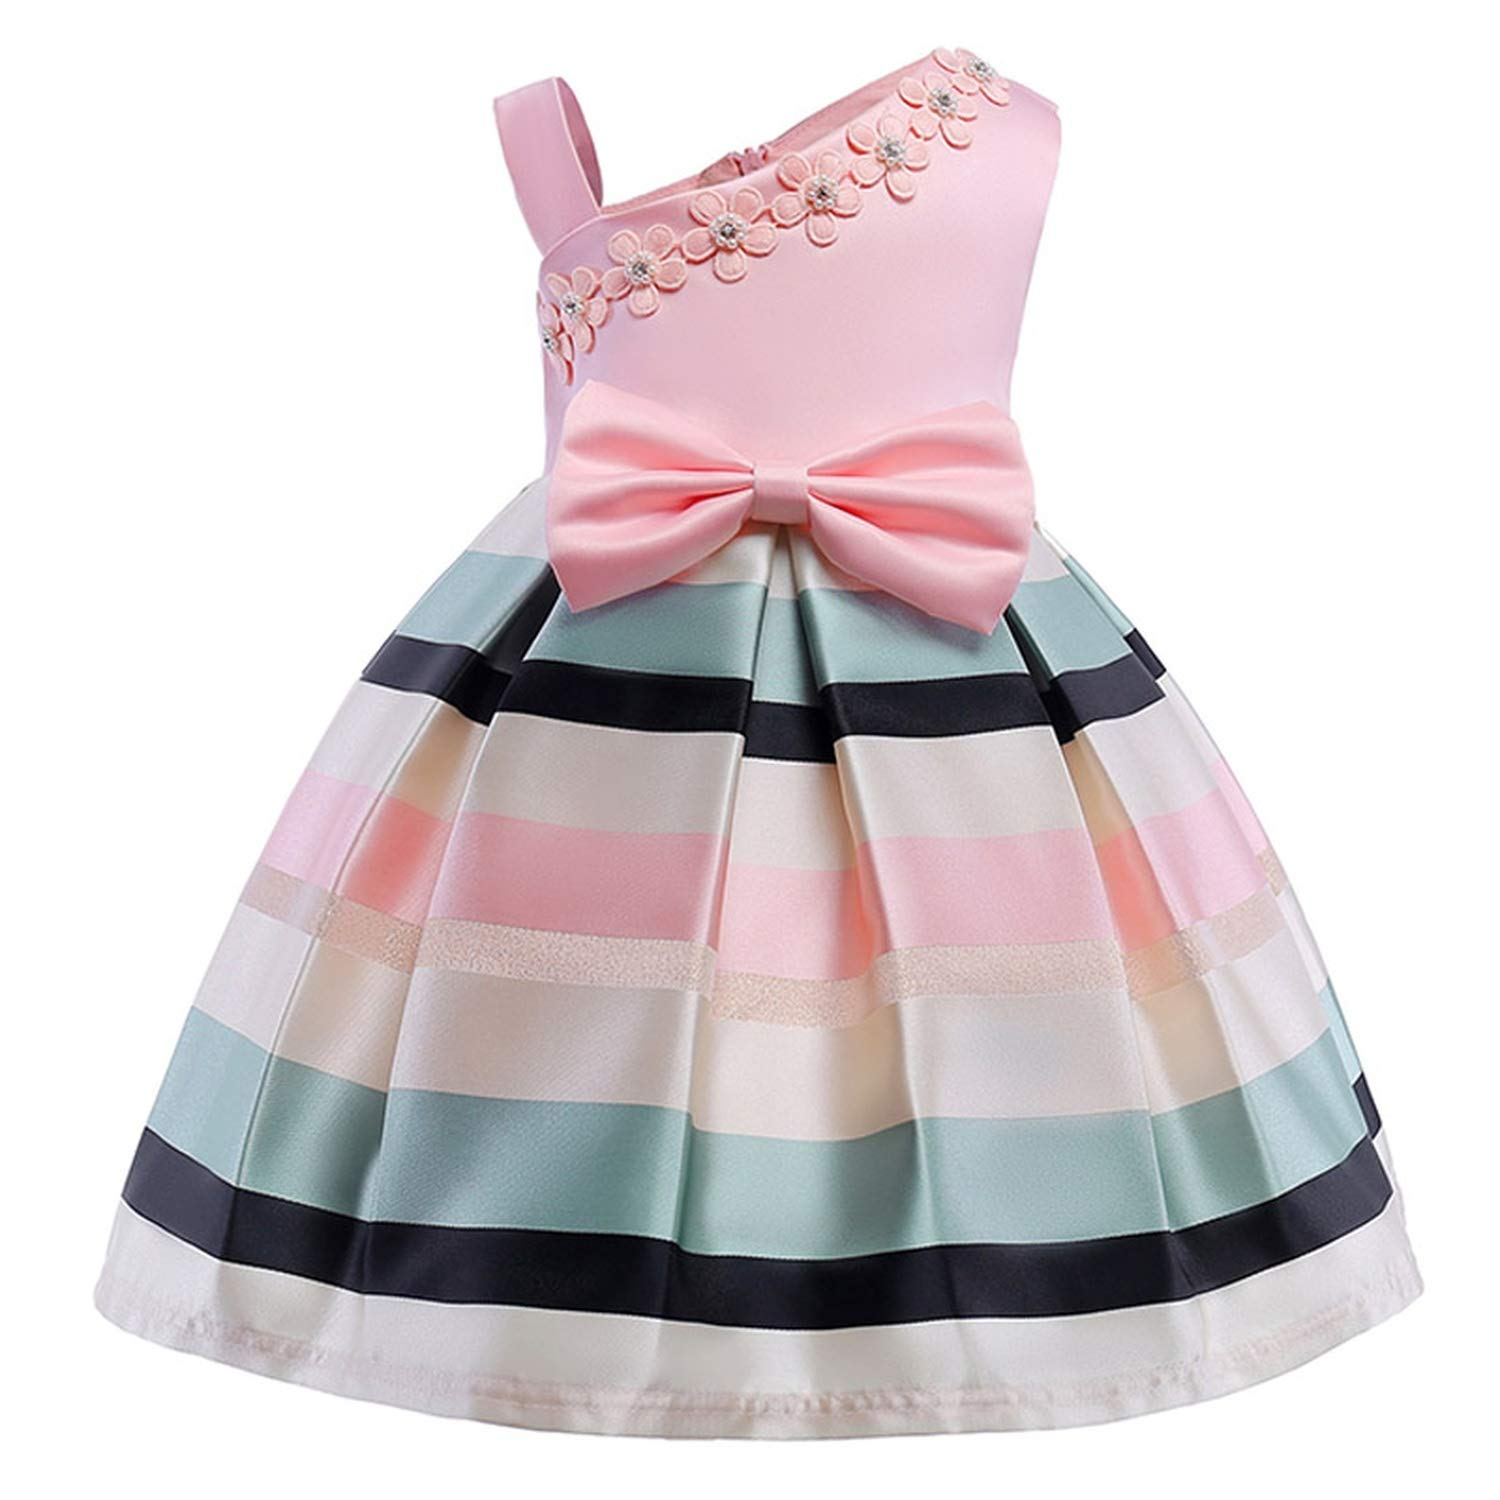 Girls Dress Summer Kids Dresses for Girl Princess Children Baby Tutu 2 3 4 5 6 7 8 9 10 Years,As Picture7,6